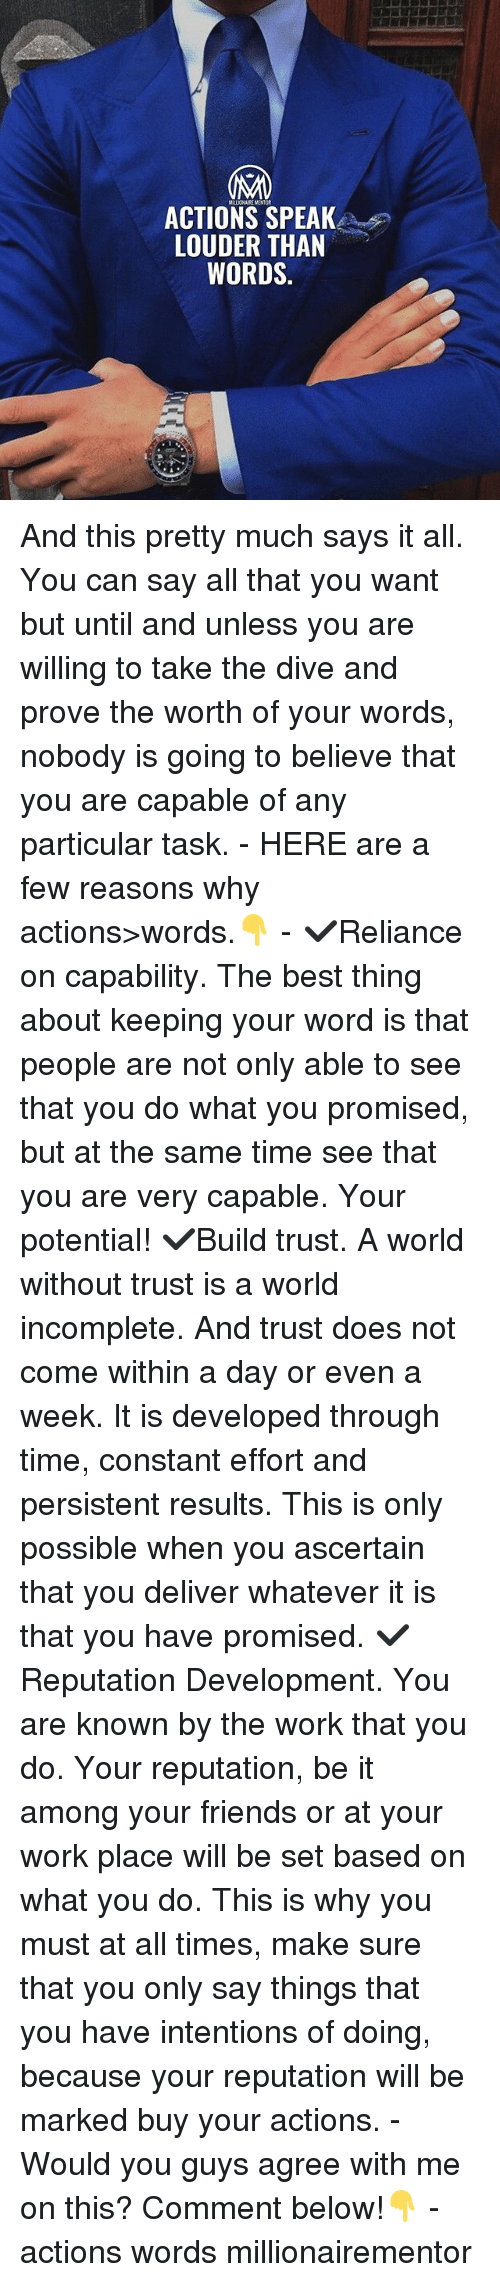 Friends, Memes, and Work: MALIONAIRE MENTOR  ACTIONS SPEAK  LOUDER THAN  MORDS And this pretty much says it all. You can say all that you want but until and unless you are willing to take the dive and prove the worth of your words, nobody is going to believe that you are capable of any particular task. - HERE are a few reasons why actions>words.👇 - ✔️Reliance on capability. The best thing about keeping your word is that people are not only able to see that you do what you promised, but at the same time see that you are very capable. Your potential! ✔️Build trust. A world without trust is a world incomplete. And trust does not come within a day or even a week. It is developed through time, constant effort and persistent results. This is only possible when you ascertain that you deliver whatever it is that you have promised. ✔️Reputation Development. You are known by the work that you do. Your reputation, be it among your friends or at your work place will be set based on what you do. This is why you must at all times, make sure that you only say things that you have intentions of doing, because your reputation will be marked buy your actions. - Would you guys agree with me on this? Comment below!👇 - actions words millionairementor